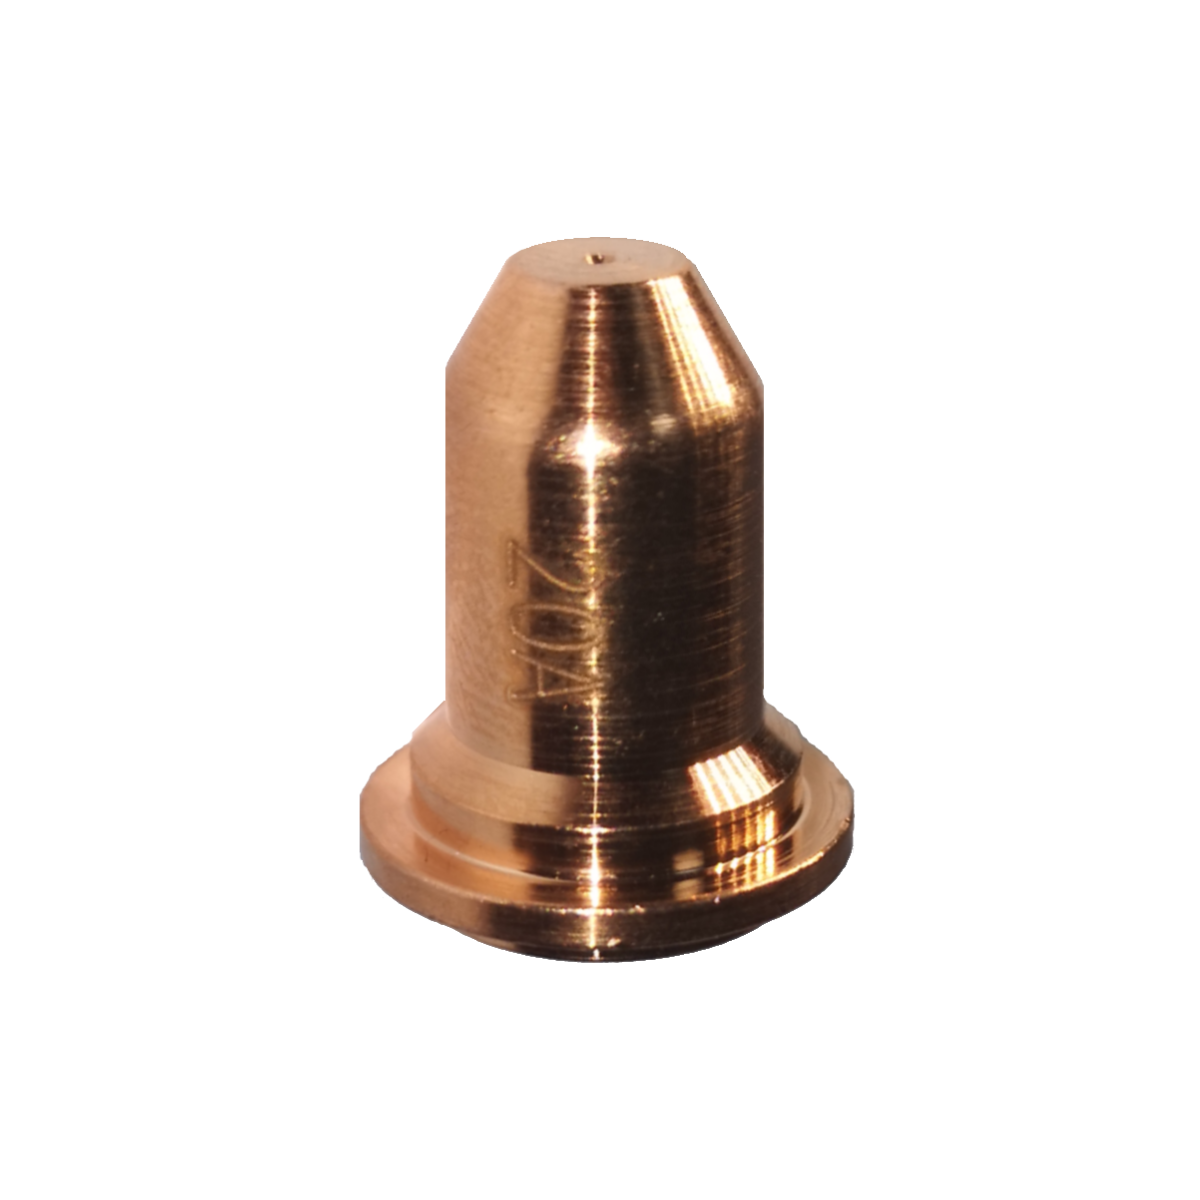 SWP Tip Contact Cutting 10-20A PC7004 | Tips for SWP Hand Torch PC7100H | toolforce.ie